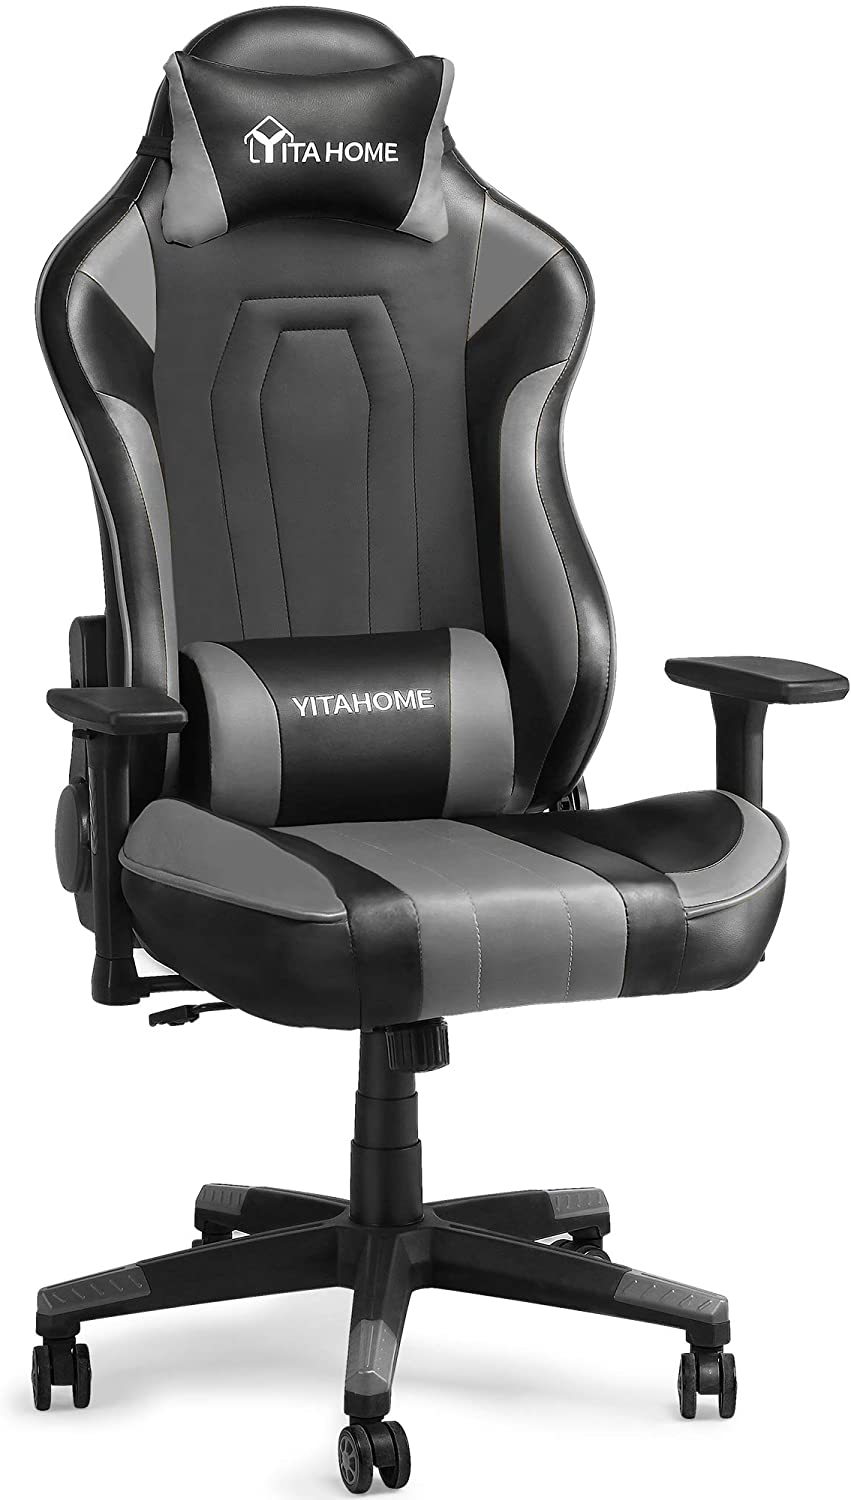 YITAHOME Massage Gaming Chair Big and Tall Heavy Duty 350lbs Ergonomic Video Game Chair